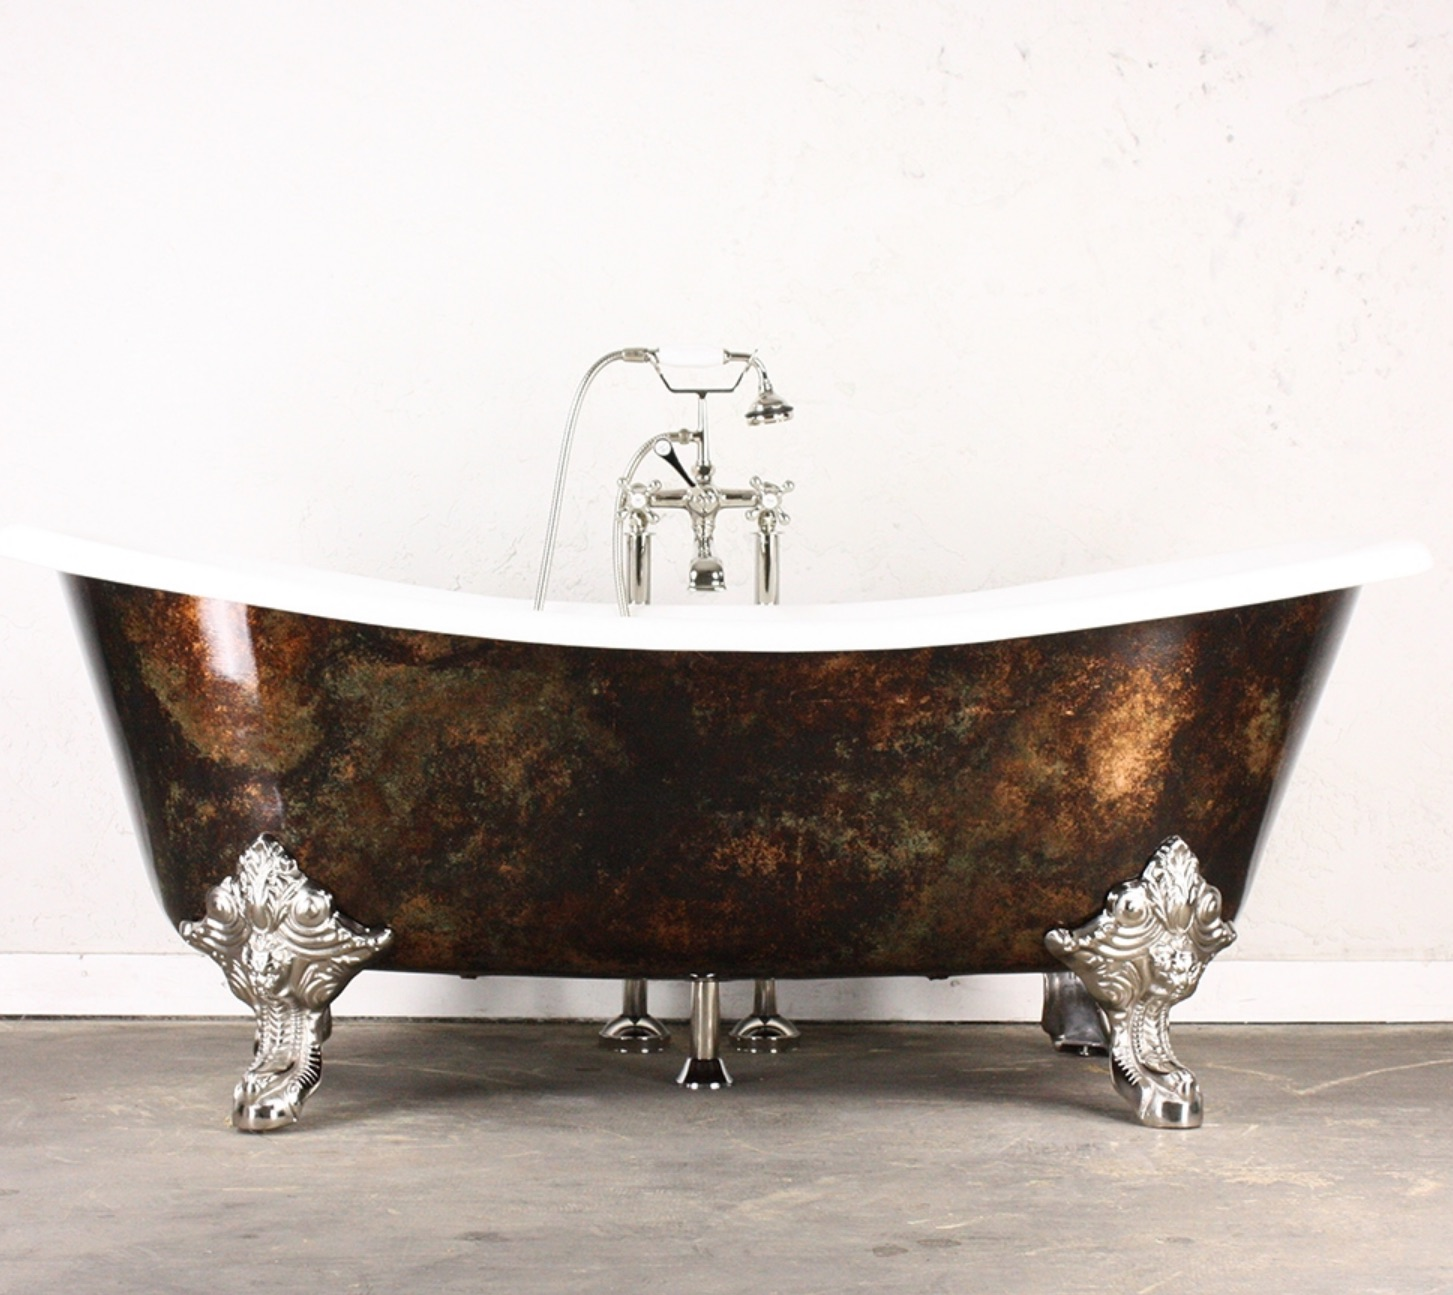 The Alexander Cast Iron French Bateau Clawfoot Tub We Adore